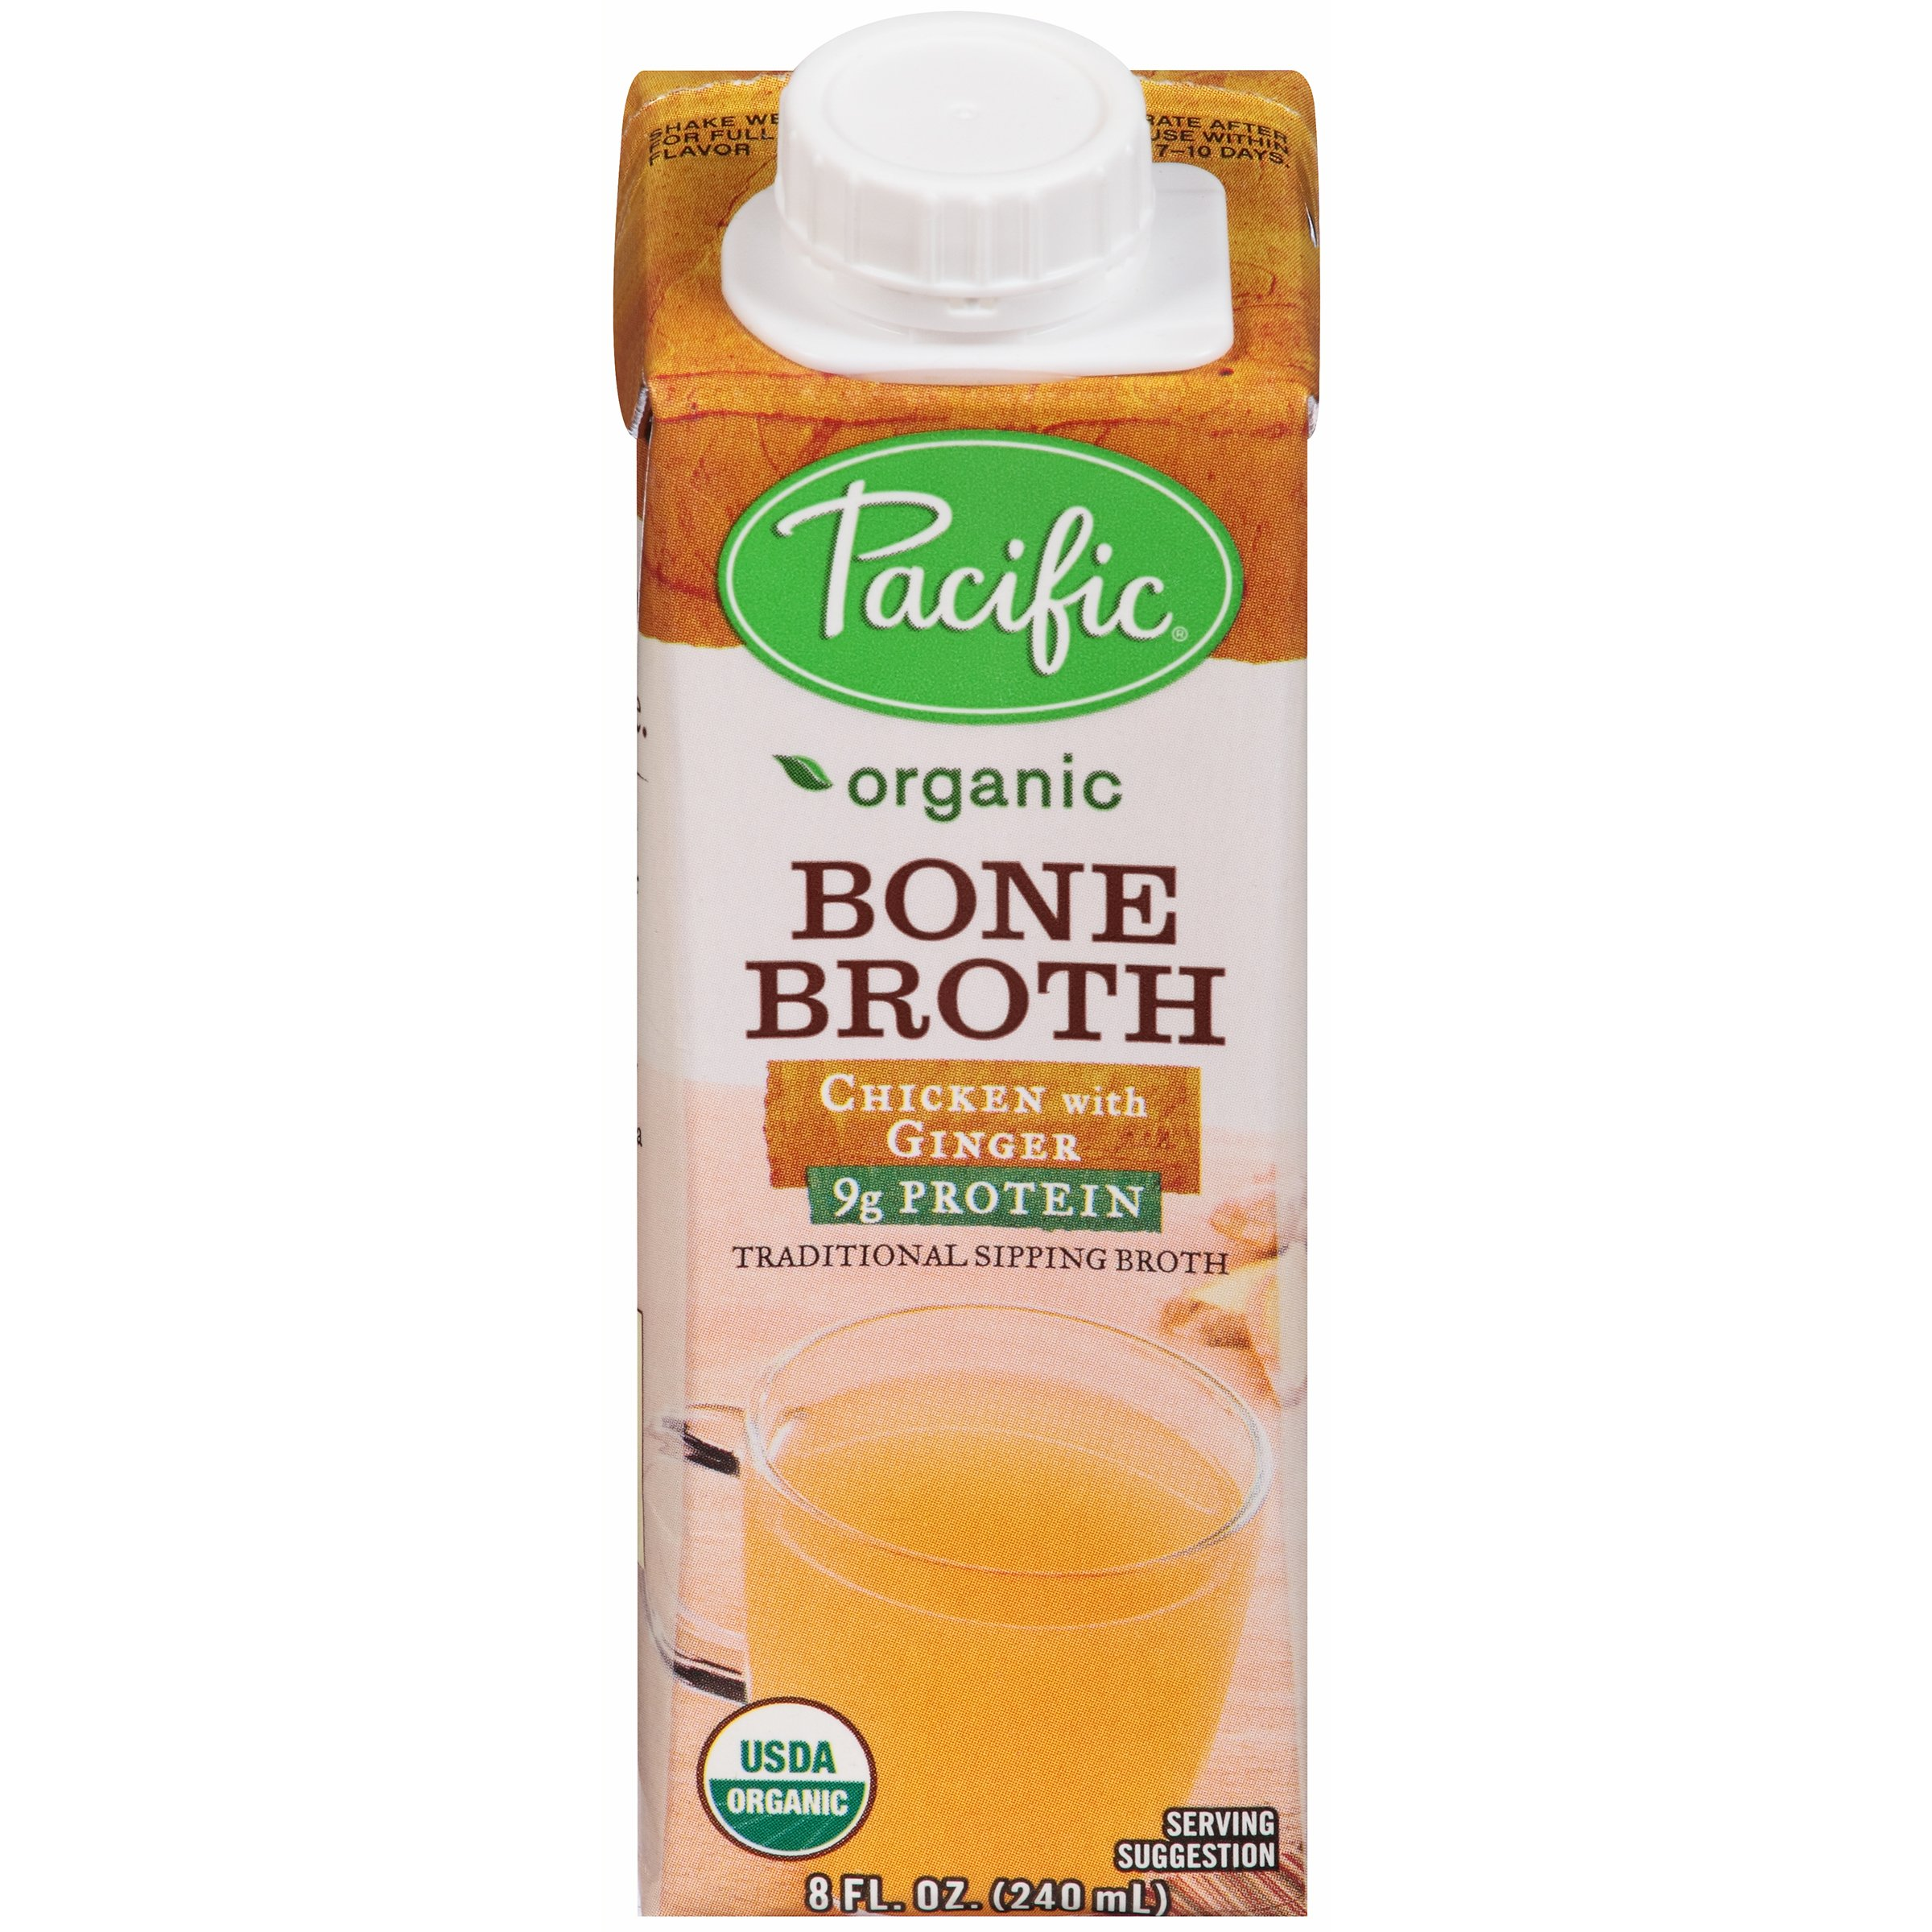 Pacific Foods Organic Bone Broth, Chicken with Ginger, 8-Ounce Cartons, 12-Pack